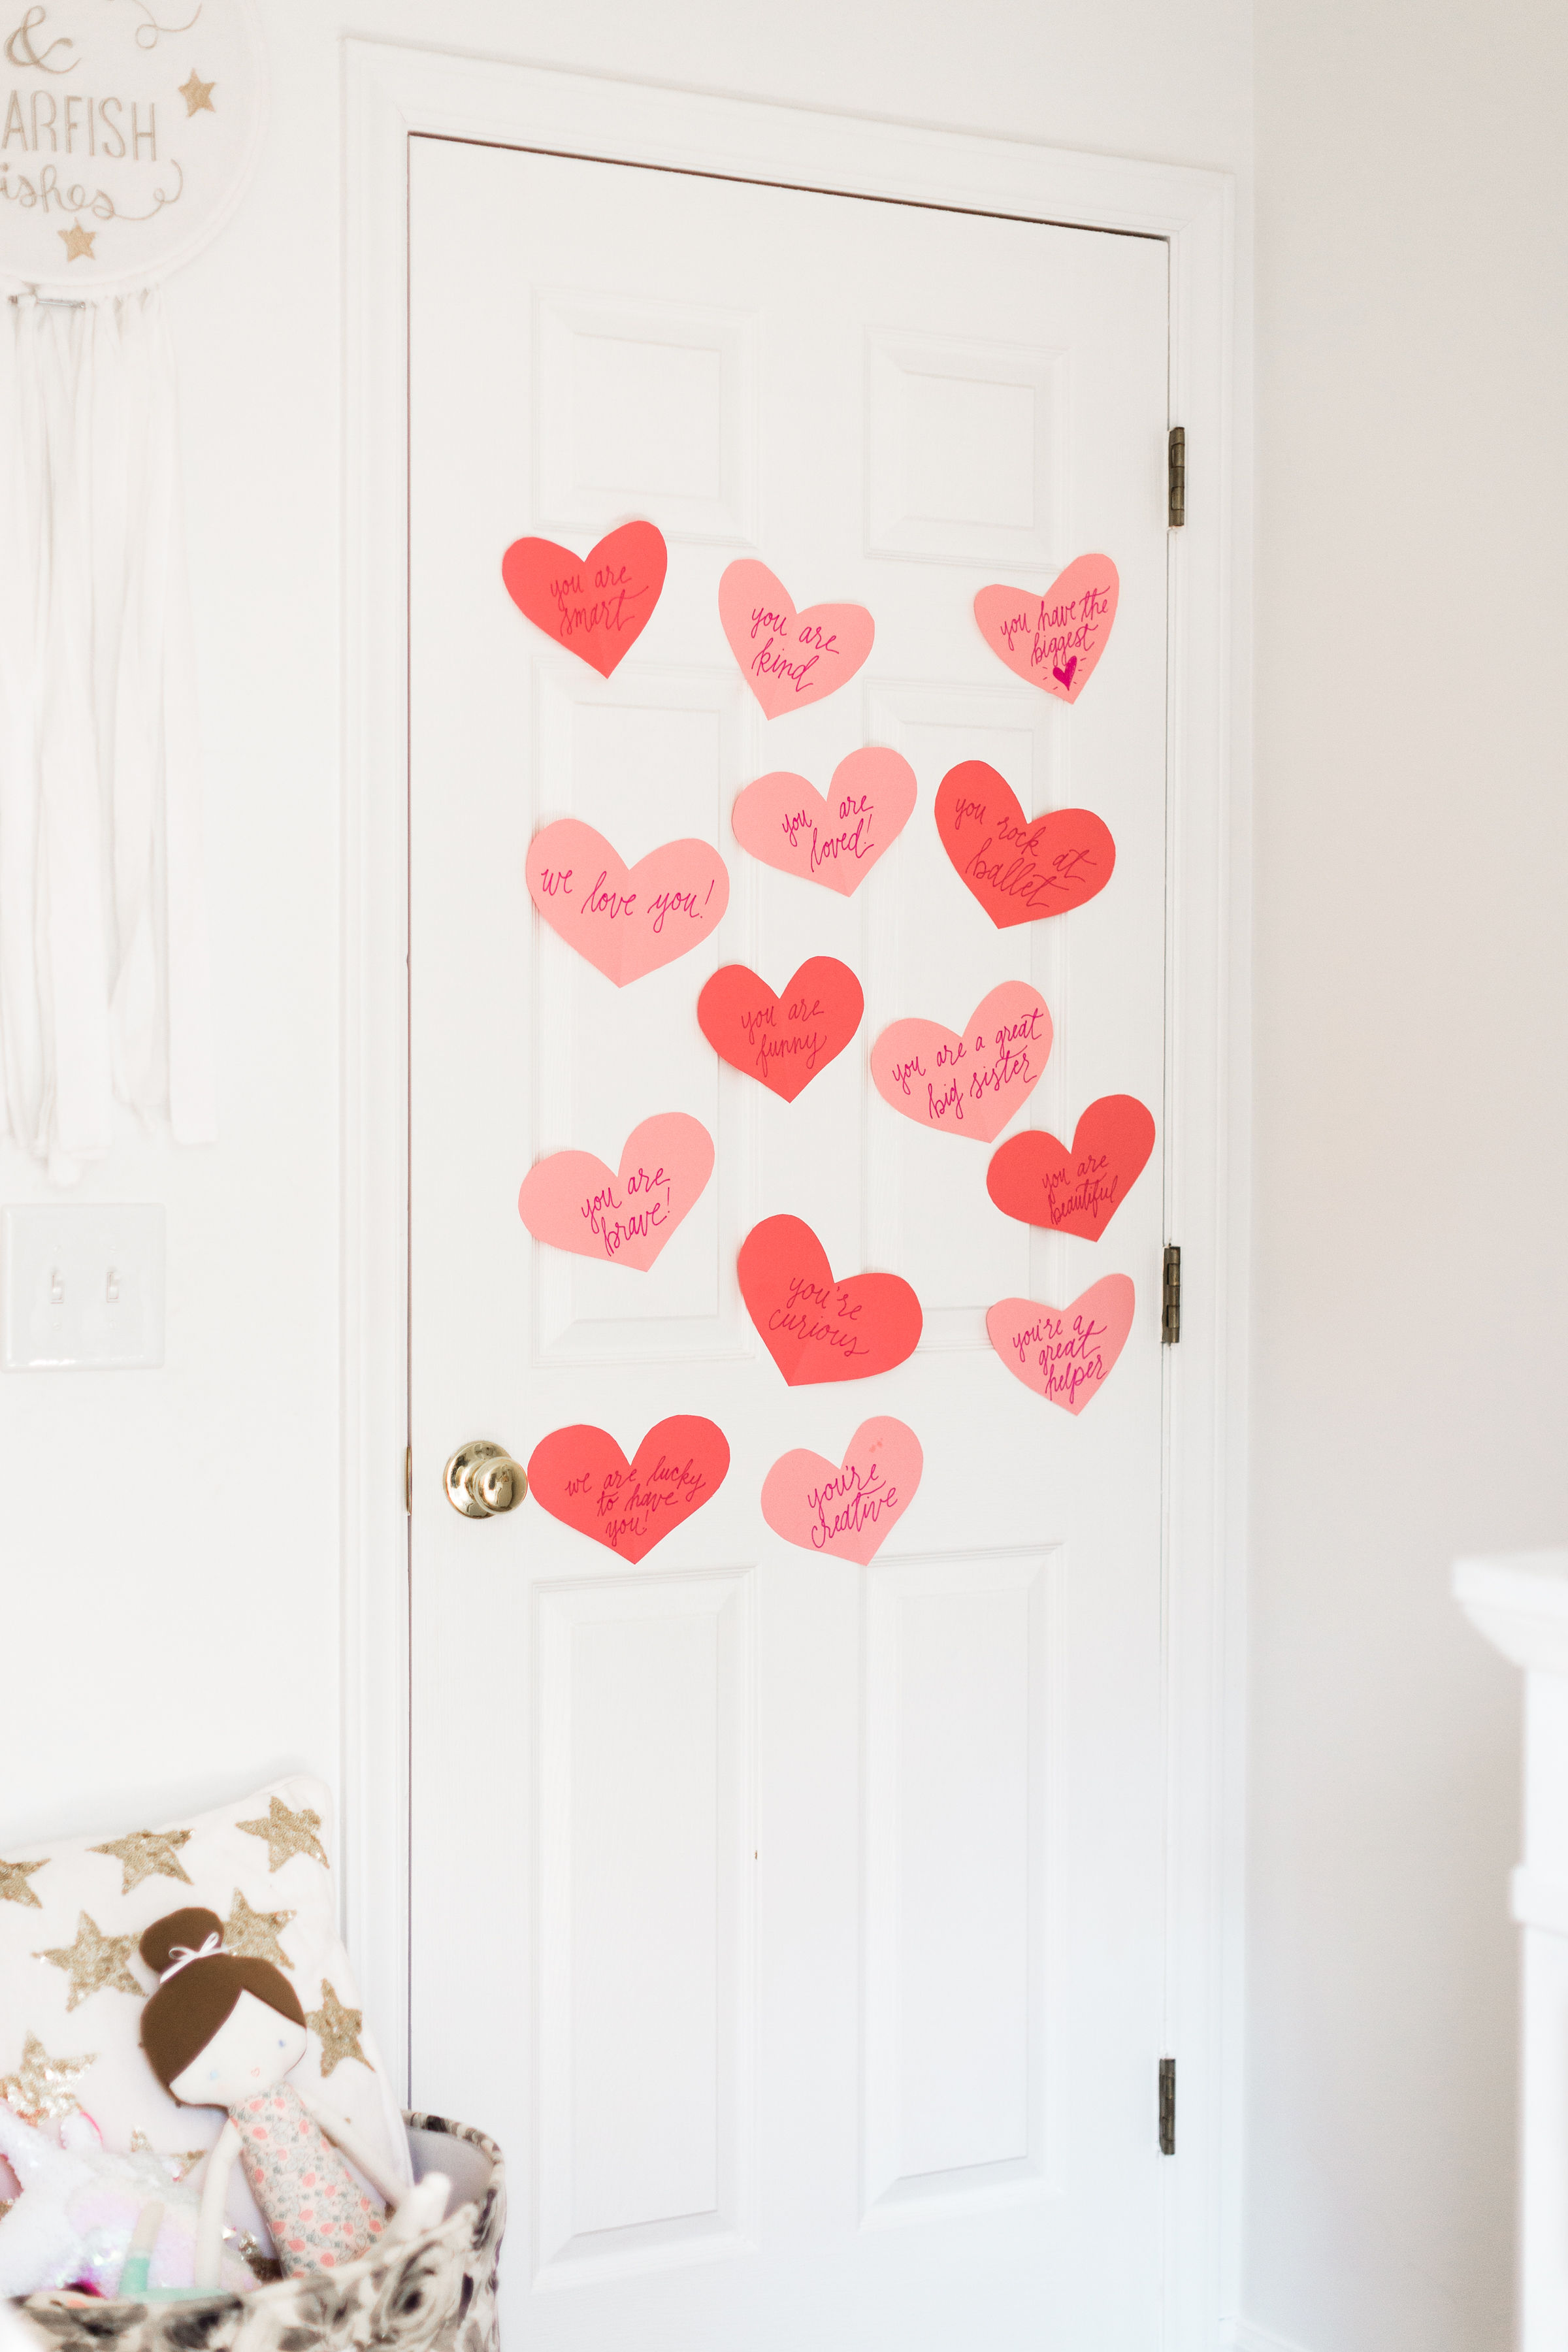 A DIY heart attack - paper hearts spelling out the reasons you love your Valentine - are sure to surprise and delight kids and grown-ups alike! | Click through for the details. | glitterinc.com | @glitterinc